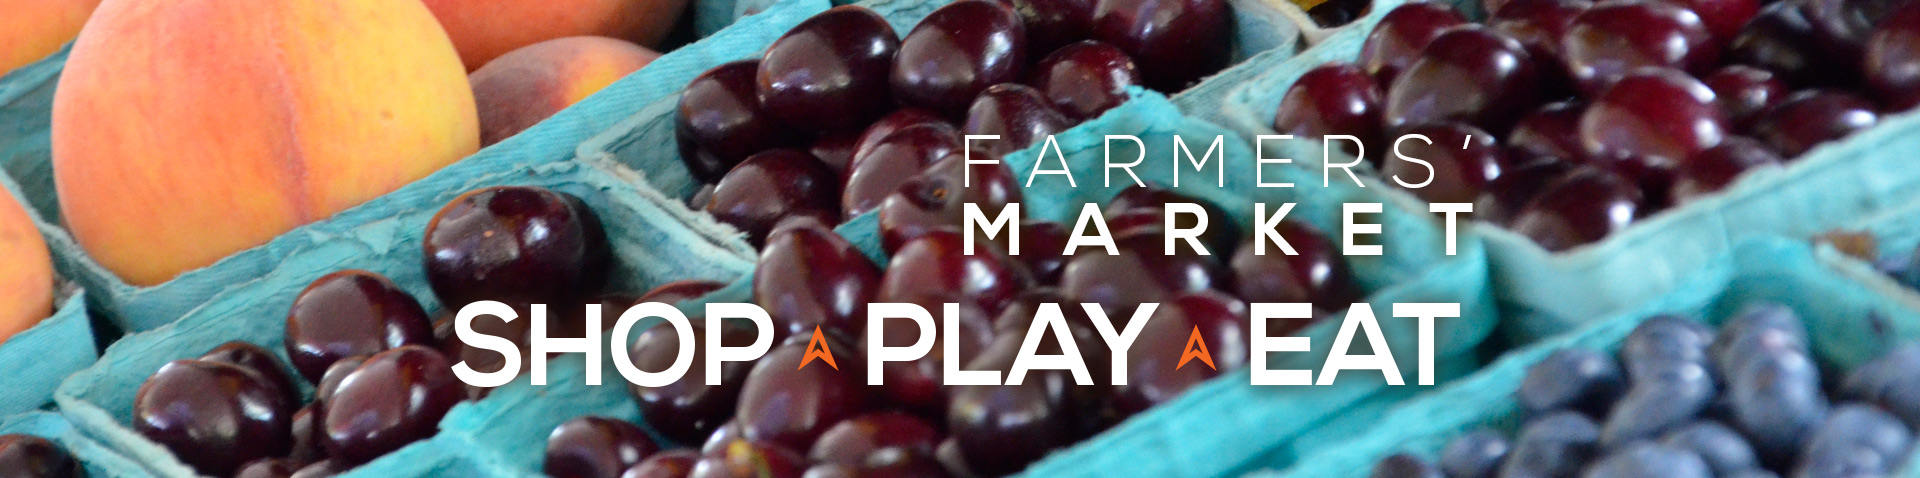 Farmers Market graphics homepage banner